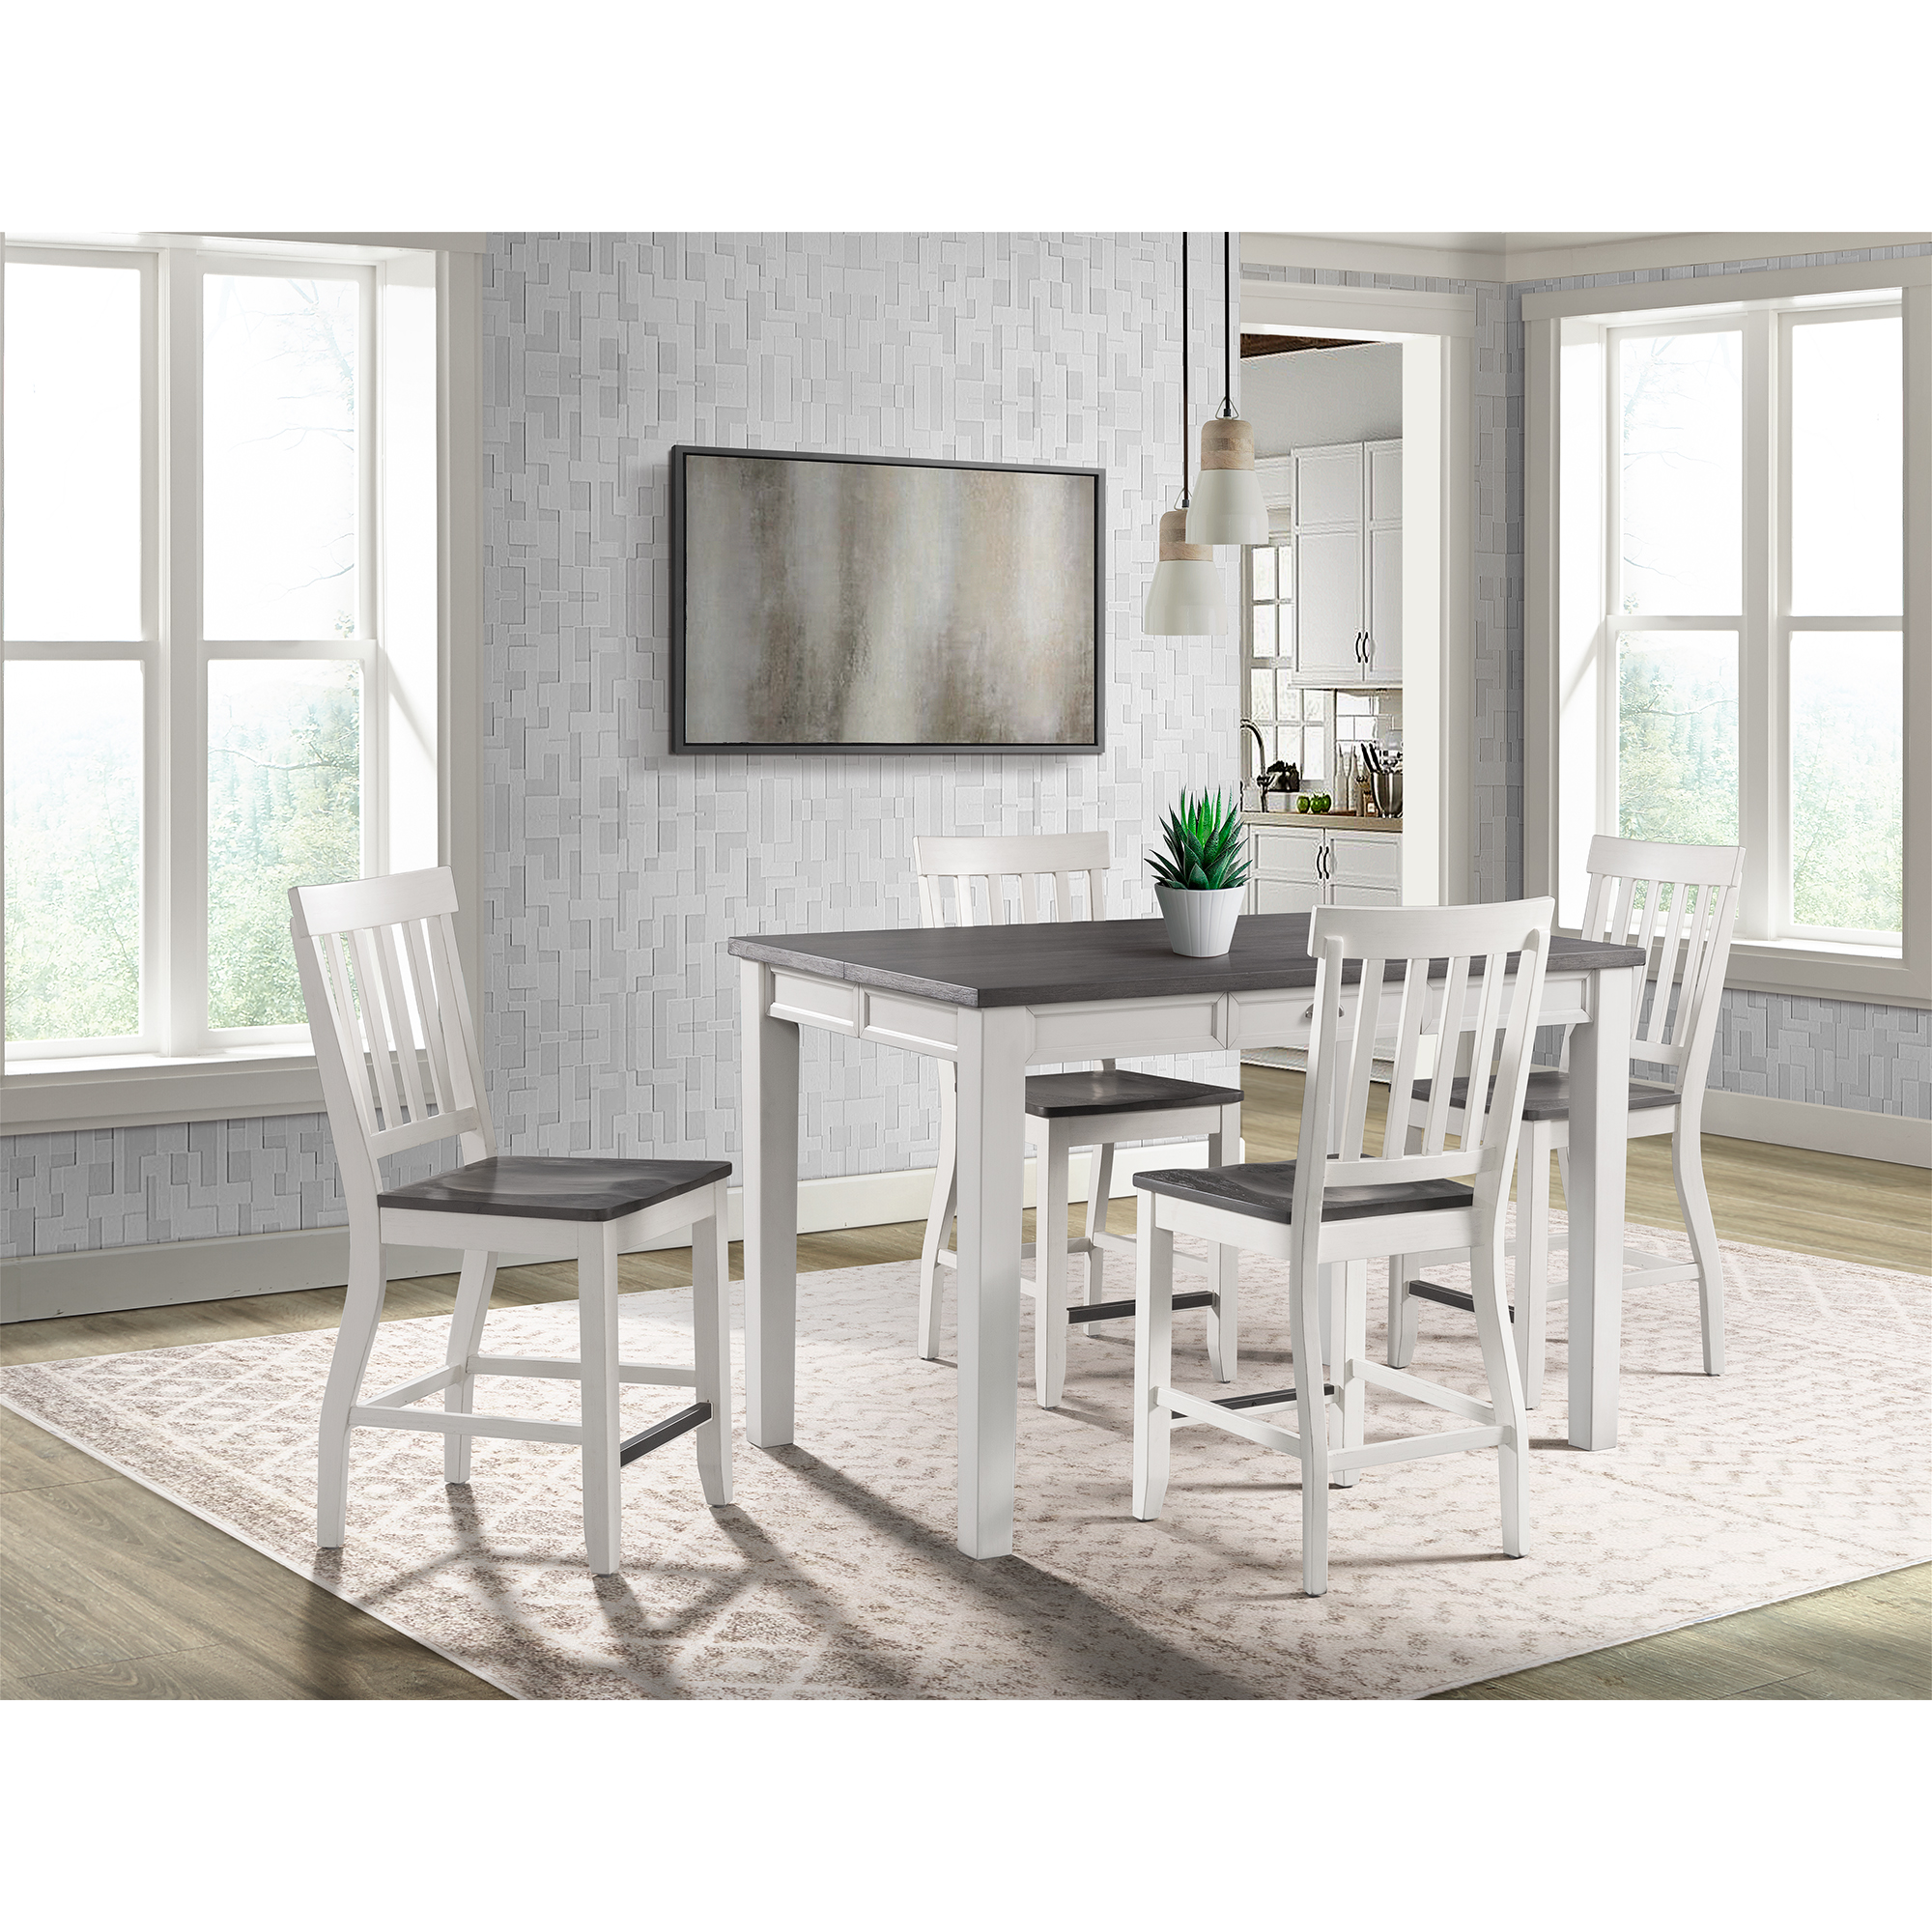 Picket House Furniture Dining Set Counter Table Chairs Photo